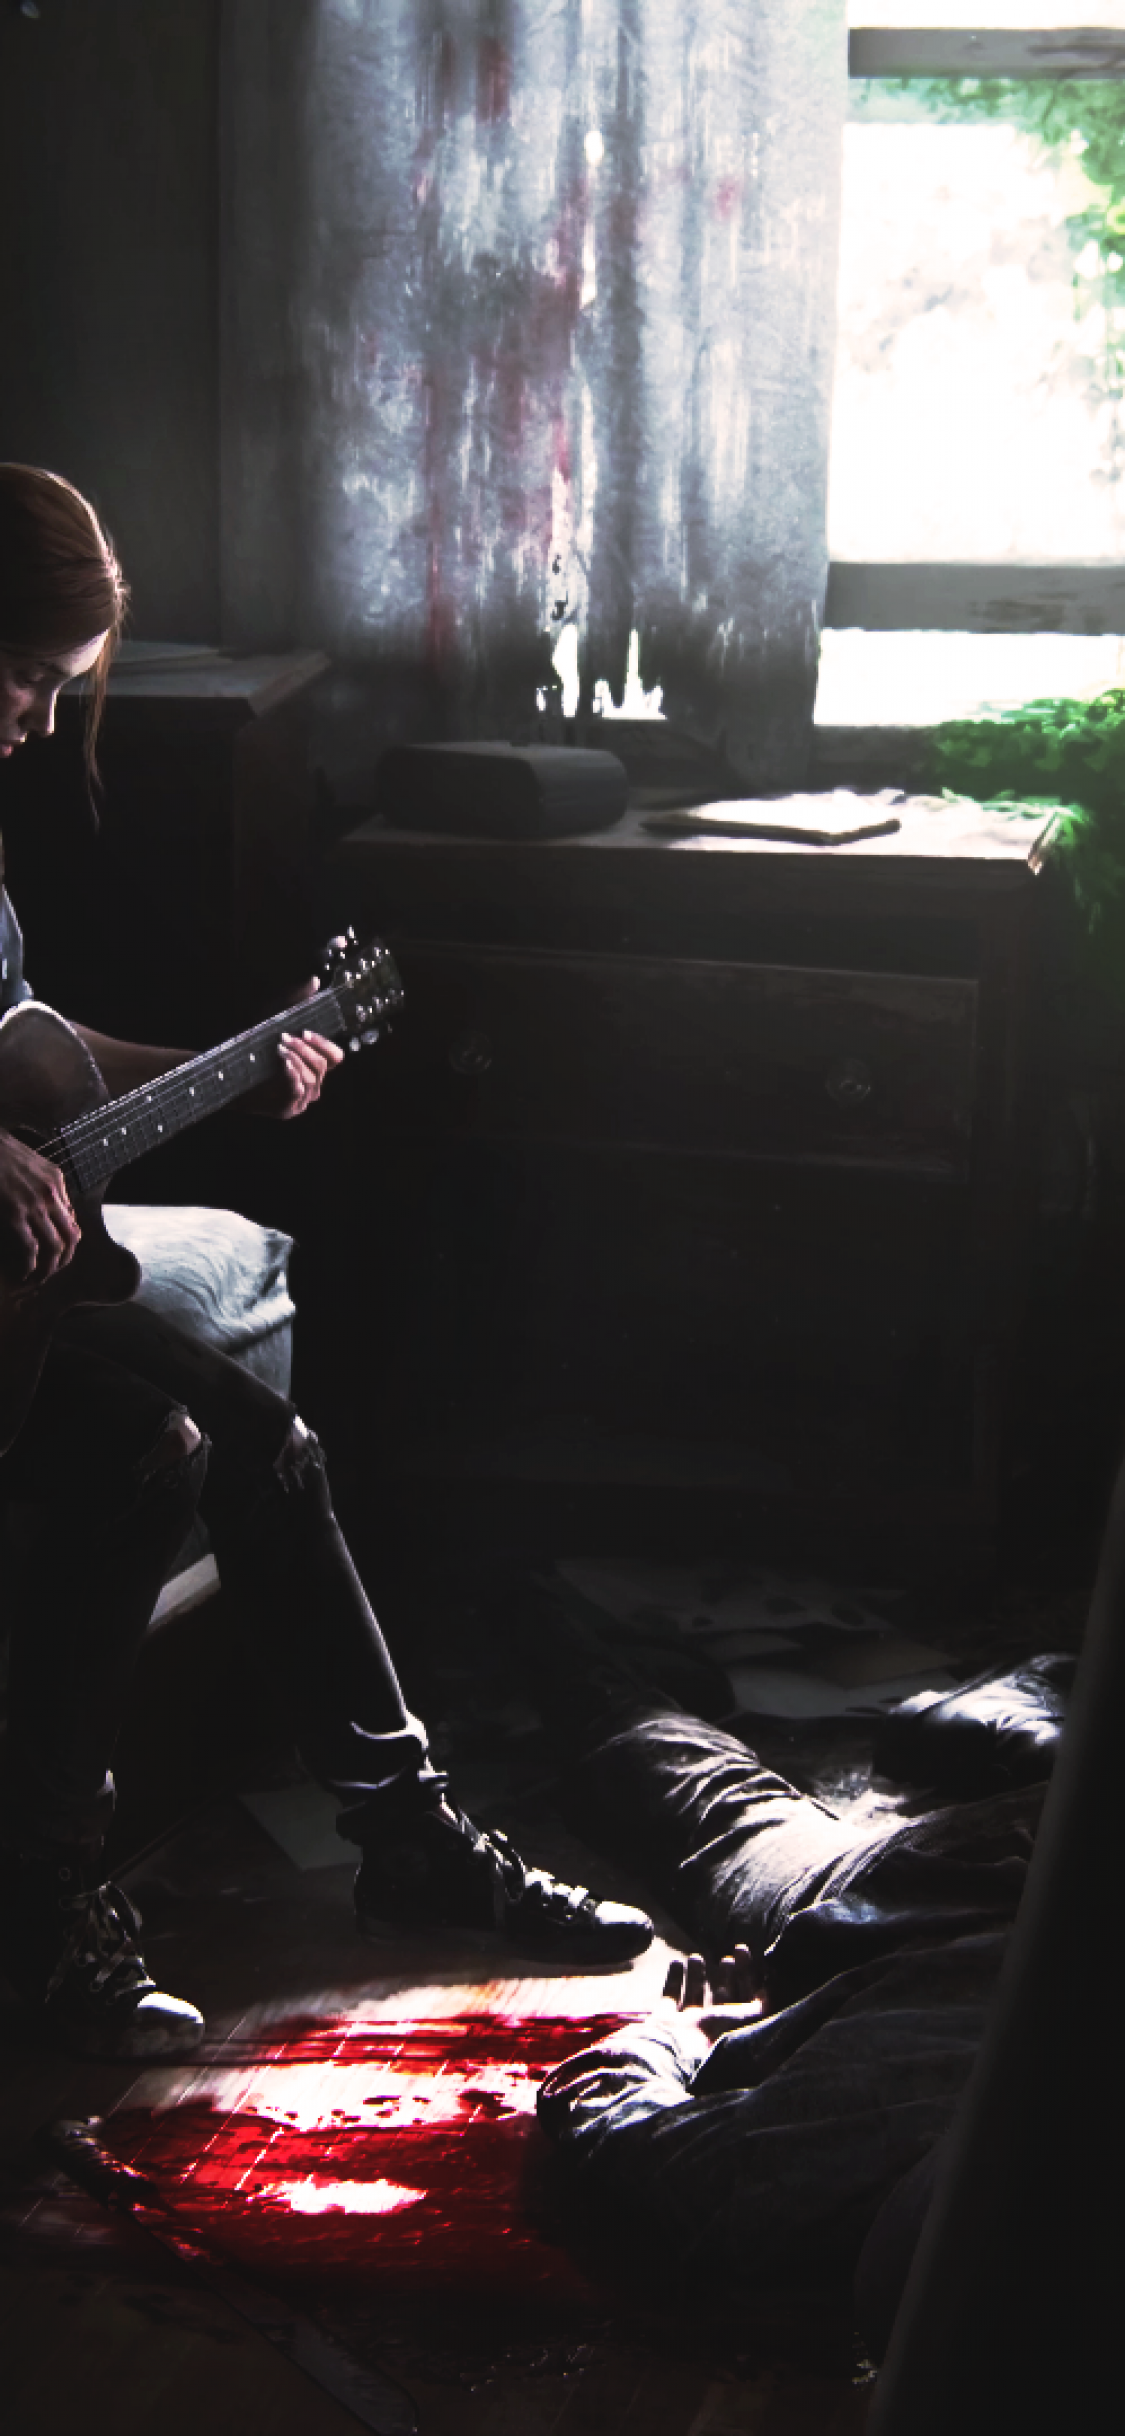 The Last Of Us 2, Ellie, Playing Guitar - Poster The Last Of Us Part 2 - HD Wallpaper